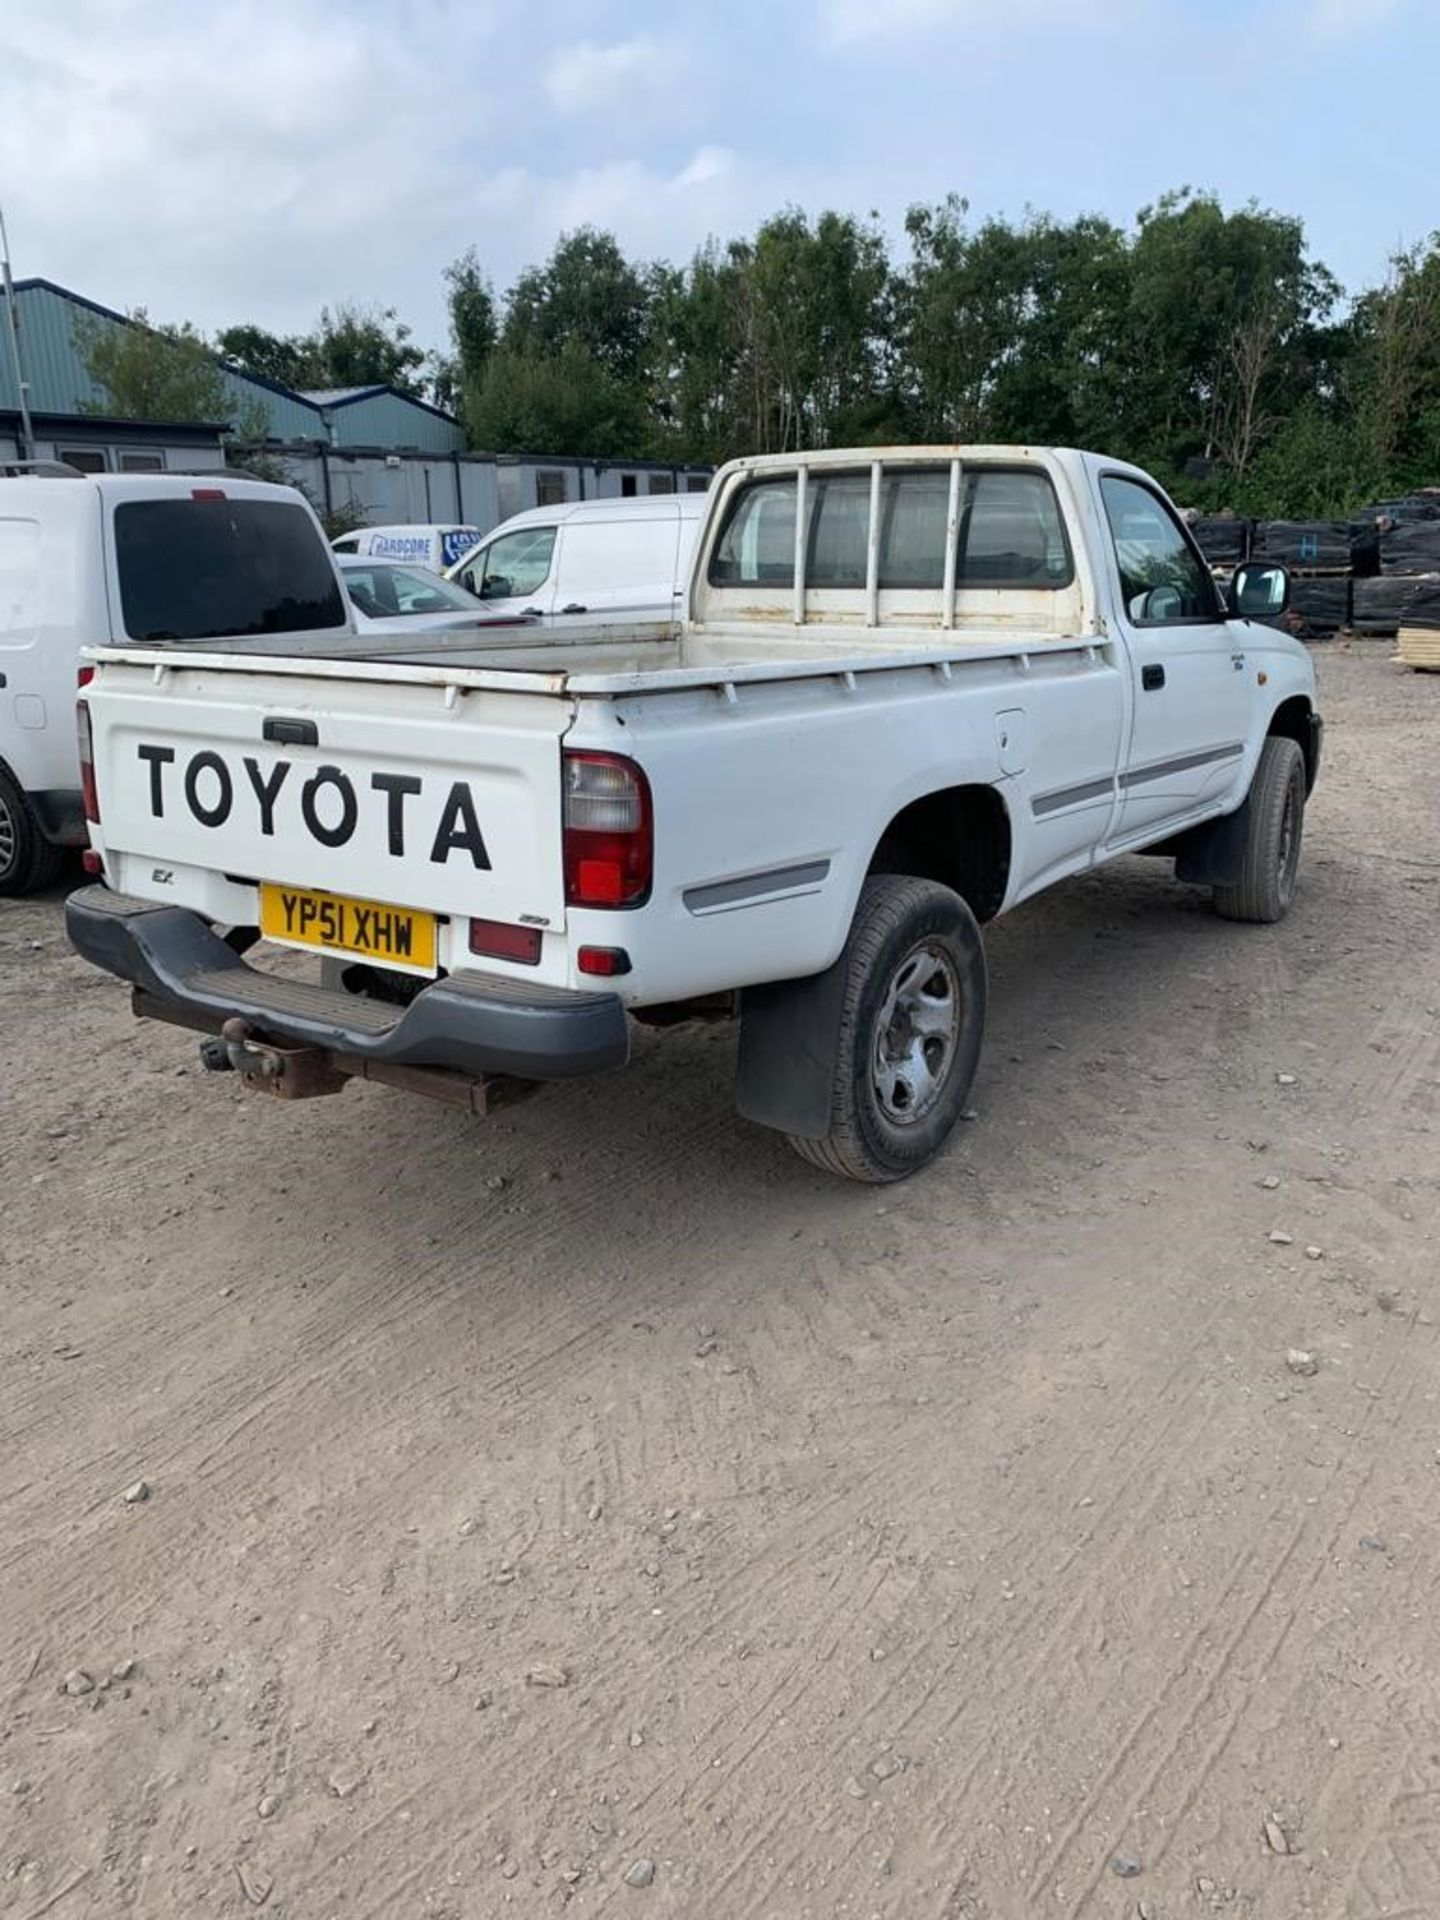 ToyotaHilux 2.5 2504WD MWB Diesel Pickup Truck, registration no.YP51 XHW, date first registered - Image 4 of 6